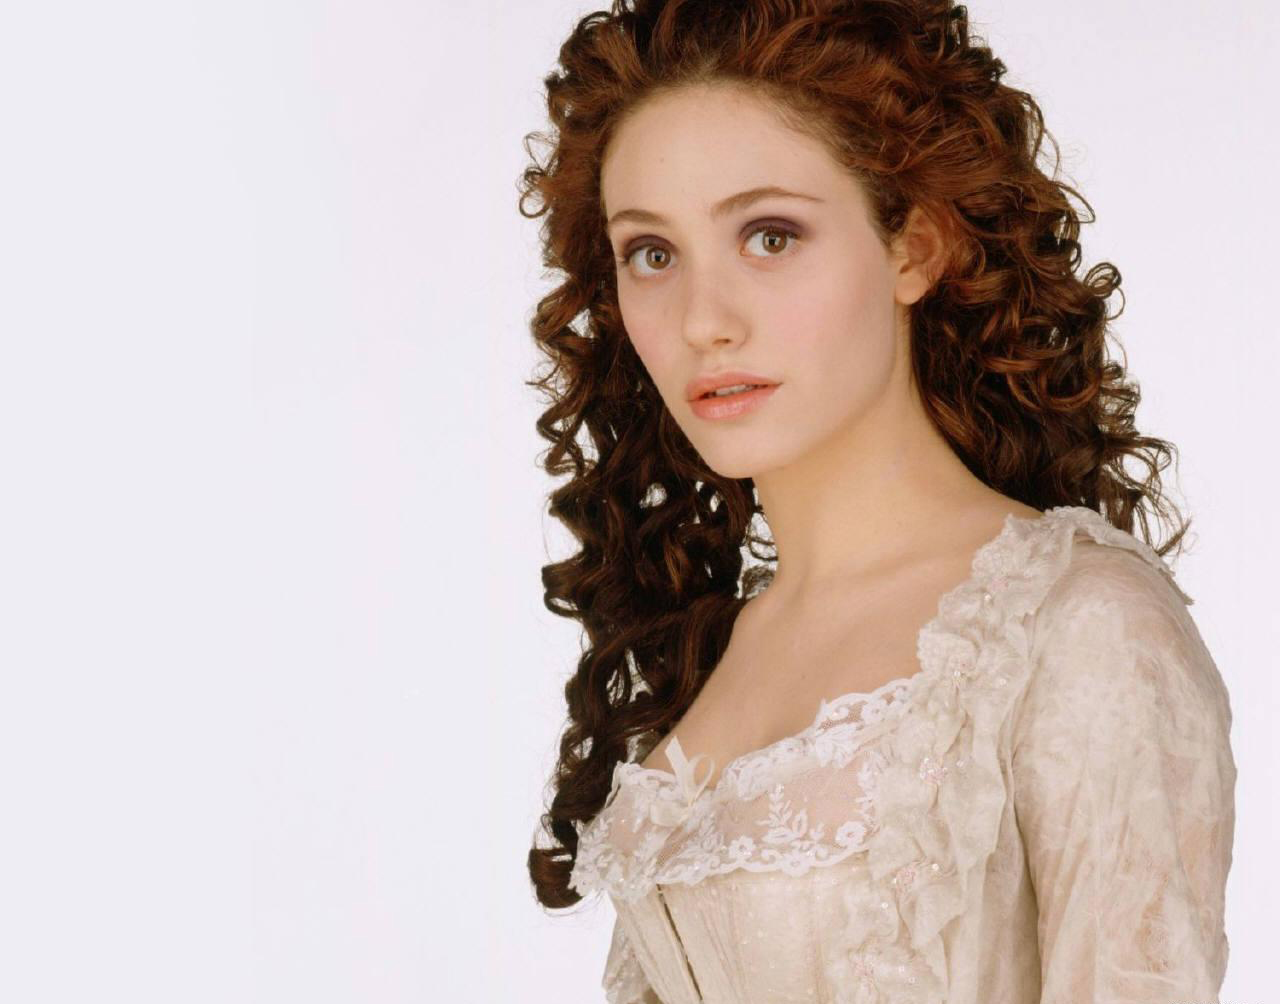 Emmy Rossum Fresh HD Wallpapers 2013 | Hollywood Universe Emmy Rossum Wallpaper